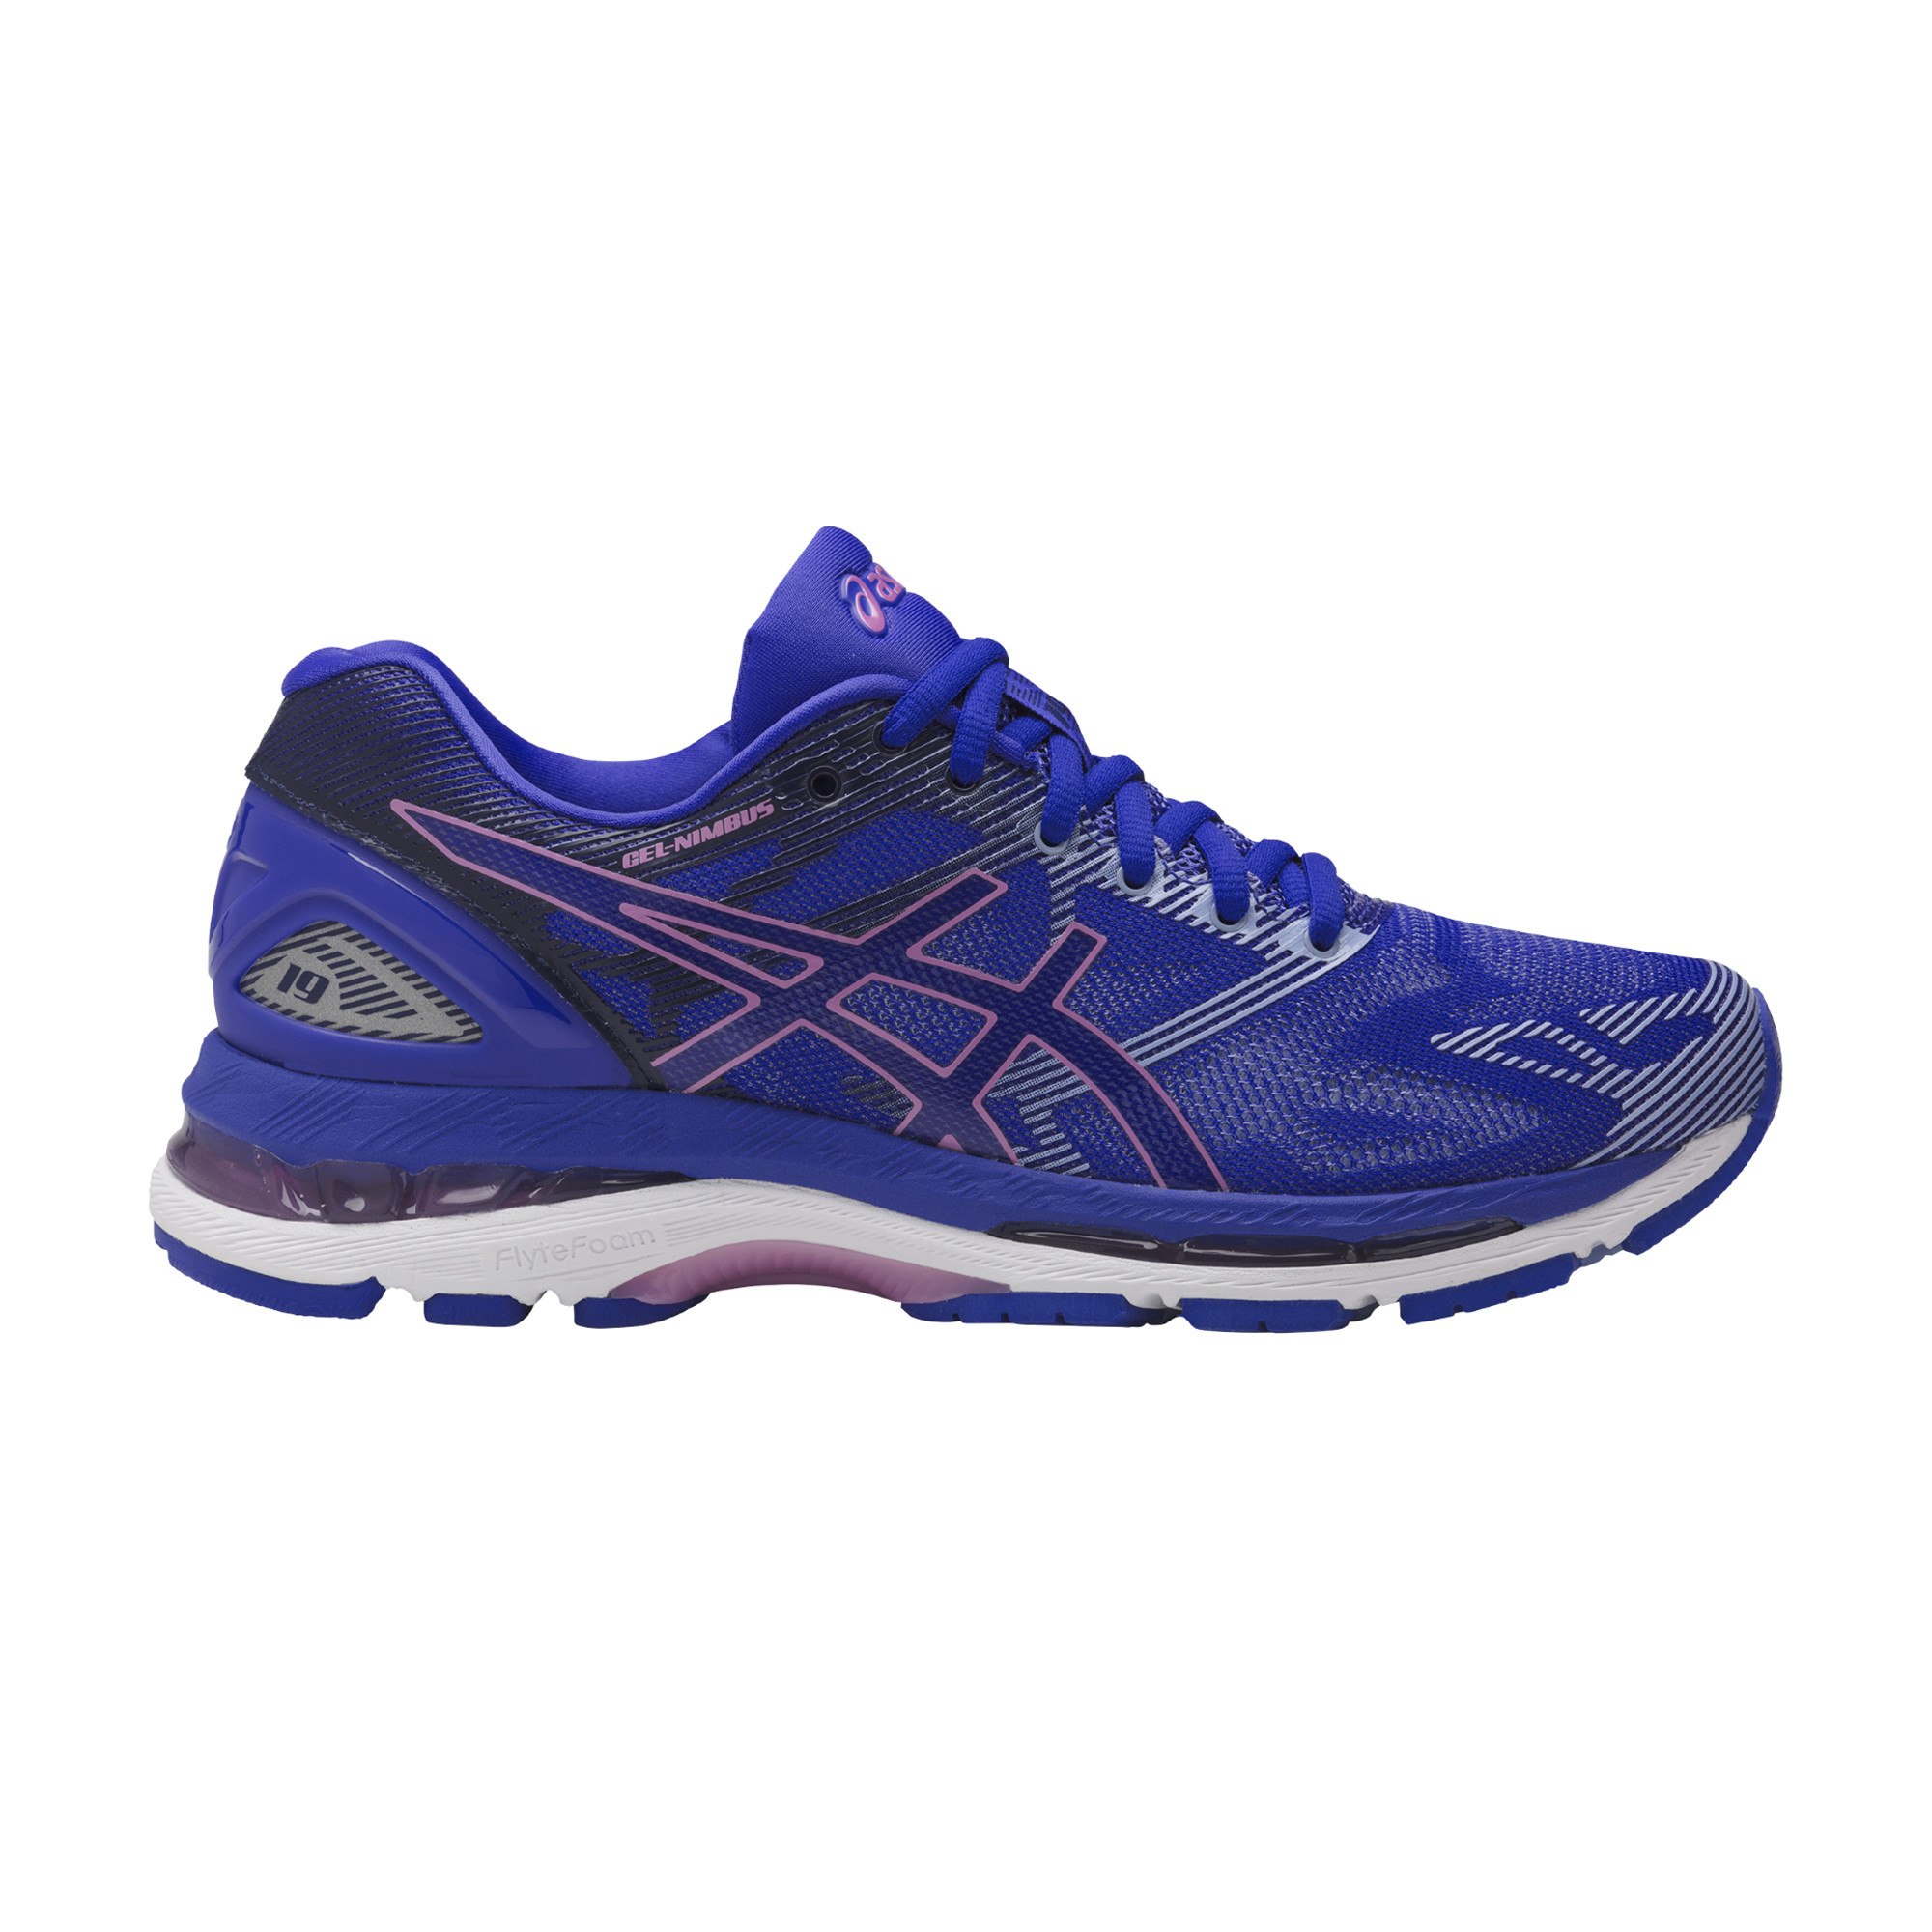 Asics Motion Control Running Shoes